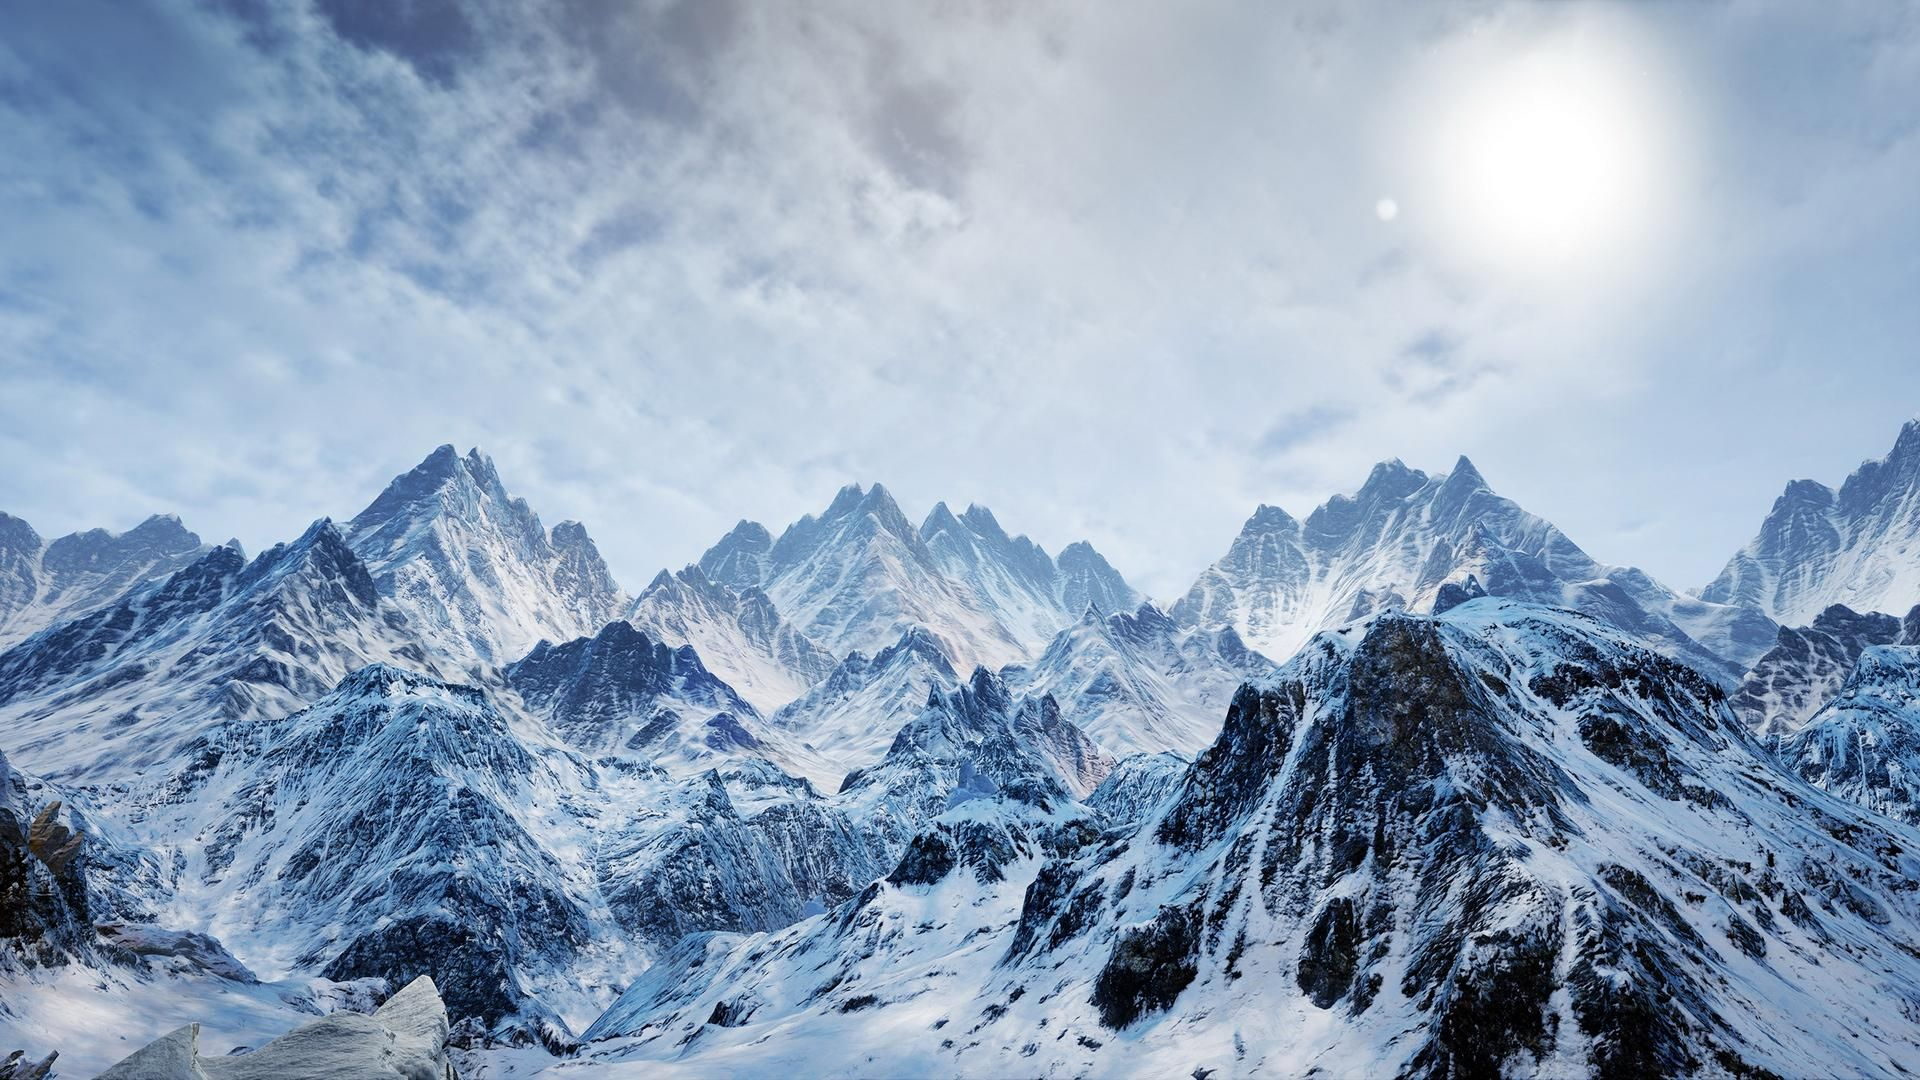 Ice and Snow Mountains Background | nature | Pinterest ...